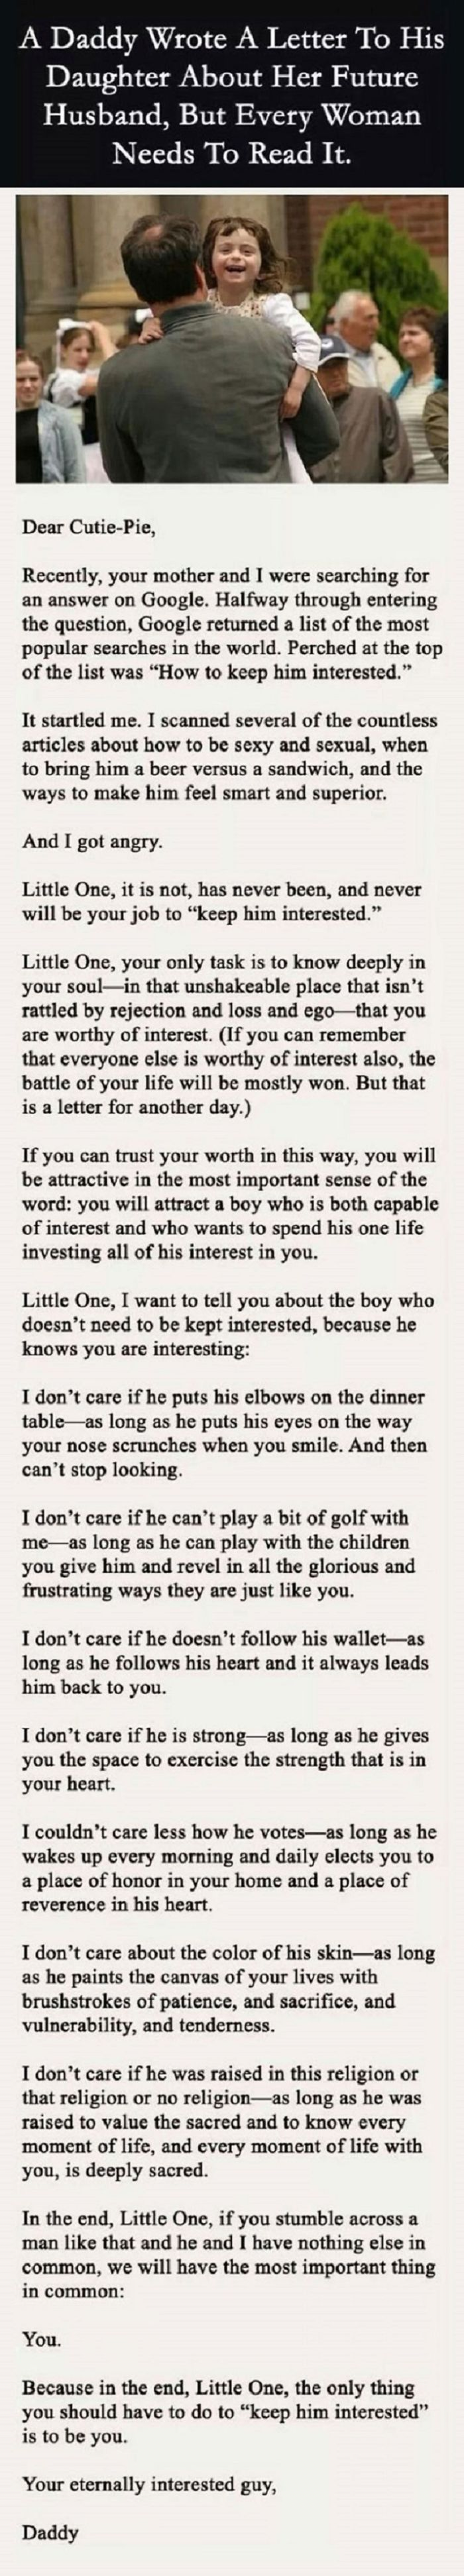 Letter From A Dad To His Daughter